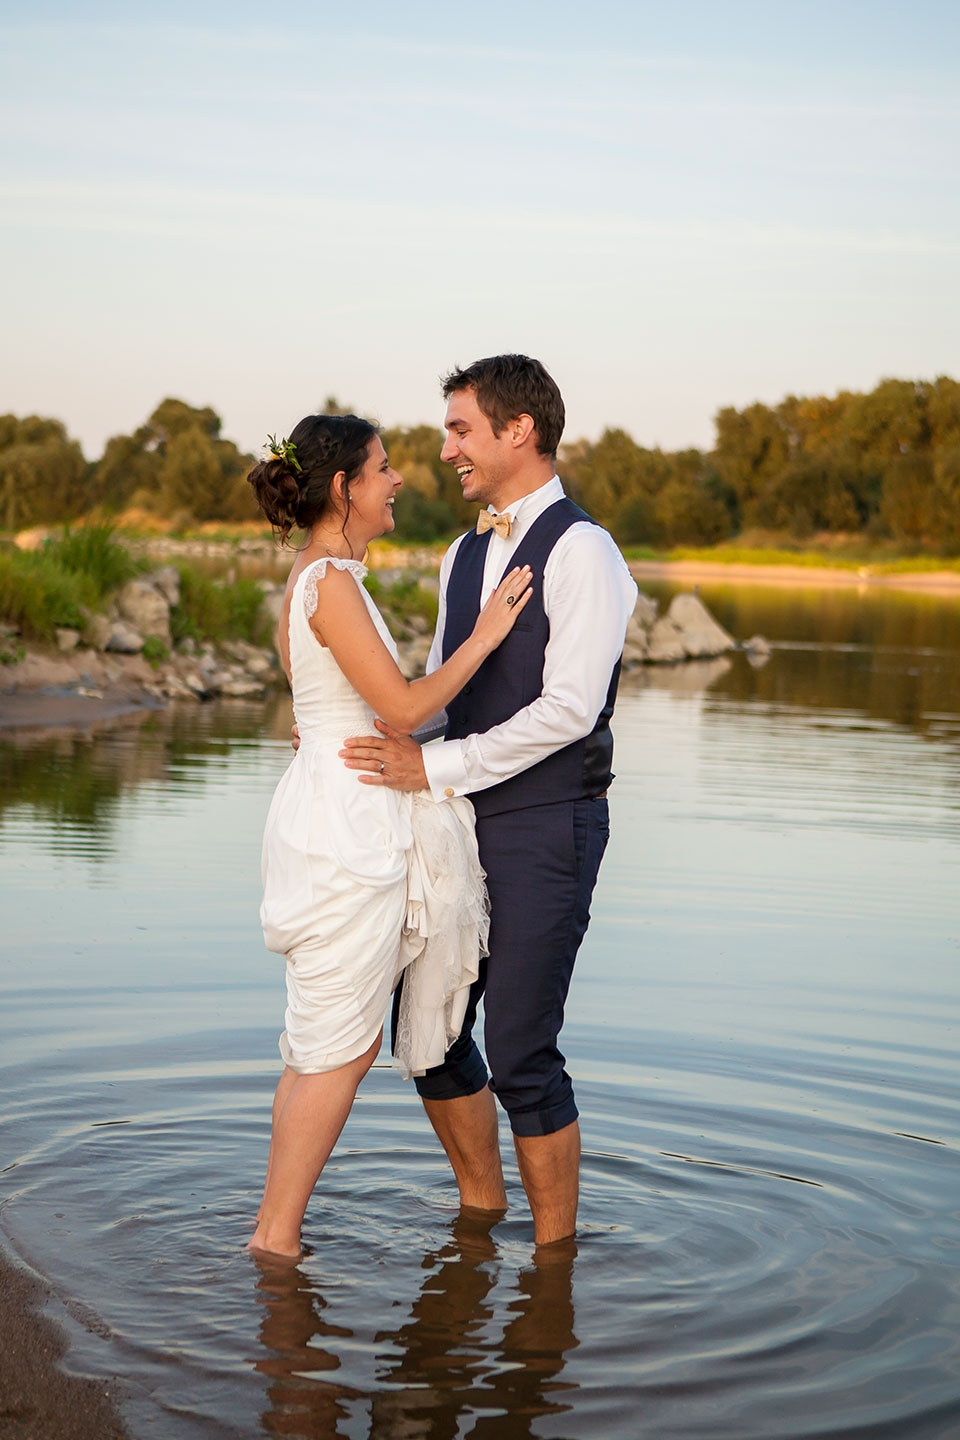 particuliers-evenements-mariage-oui-elise&quentin-78